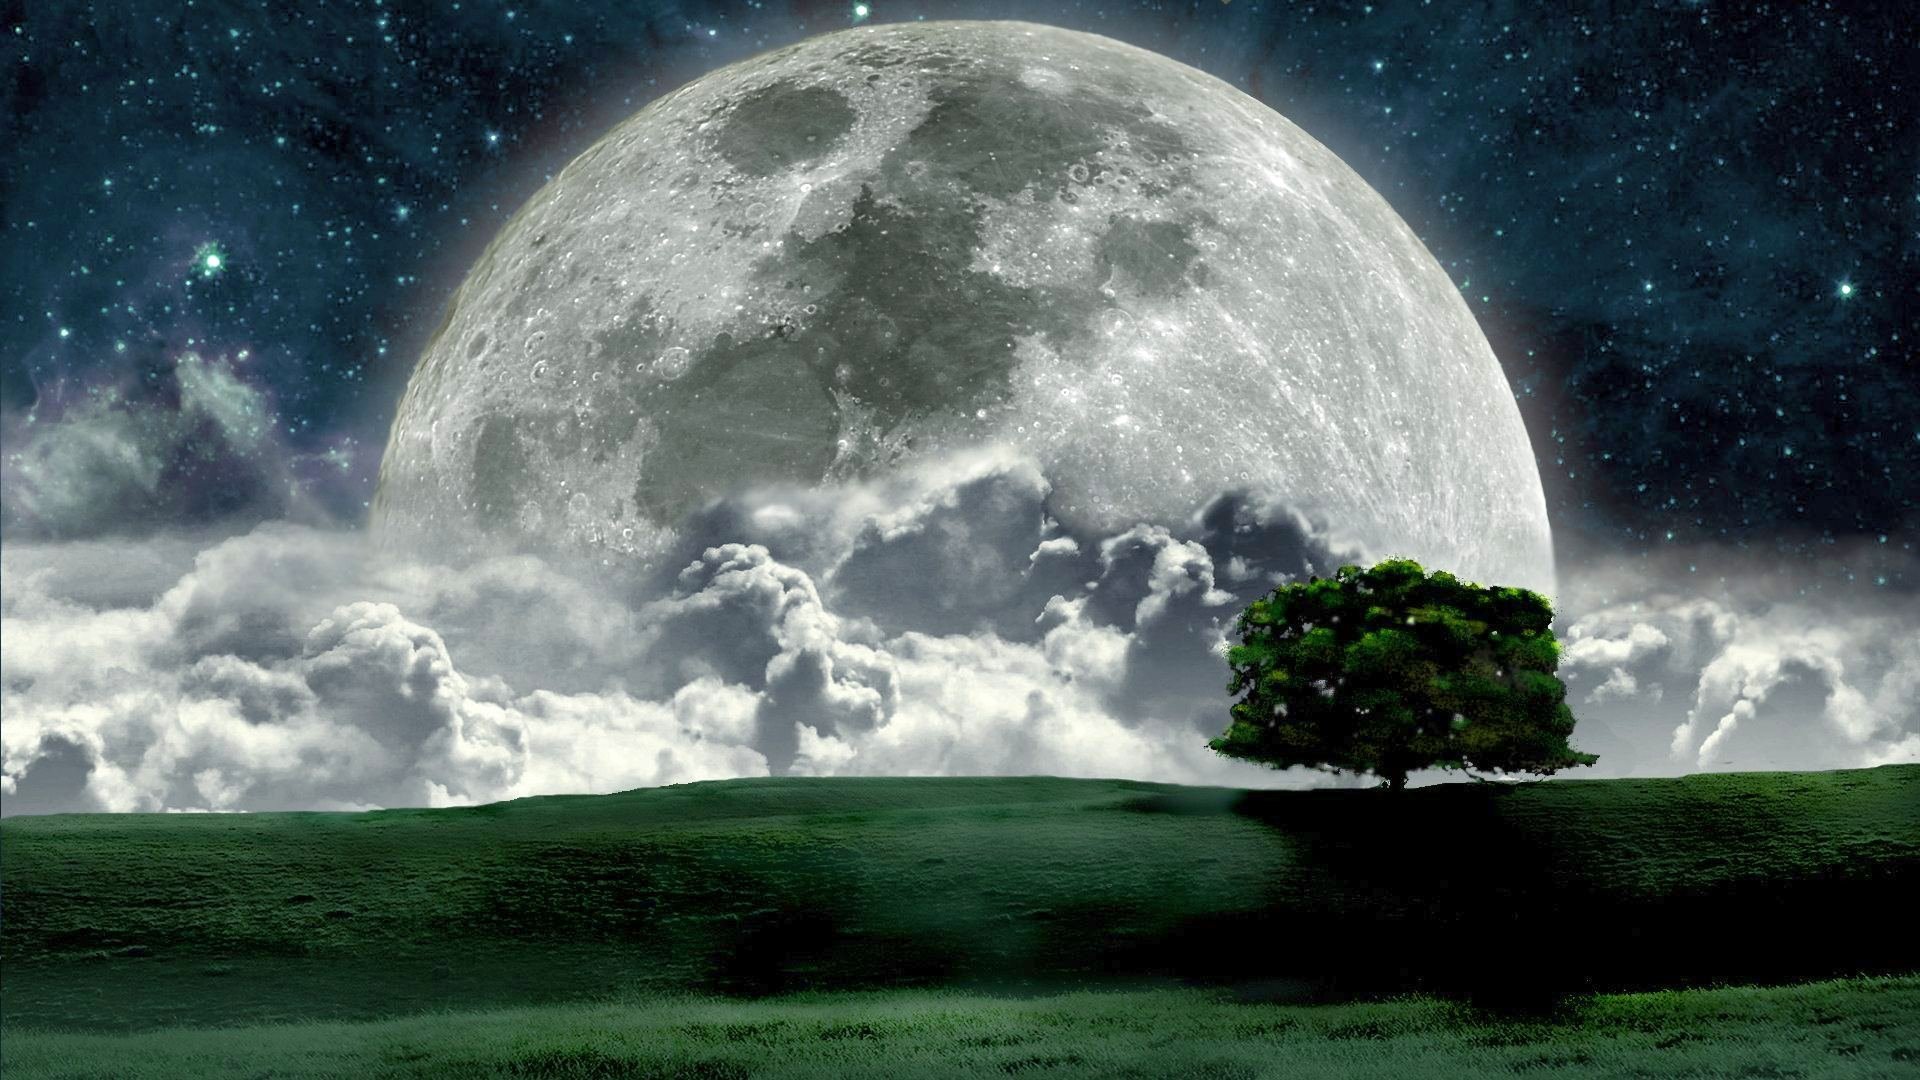 beautiful night moon photos hd wallpaper free full moon wallpaper